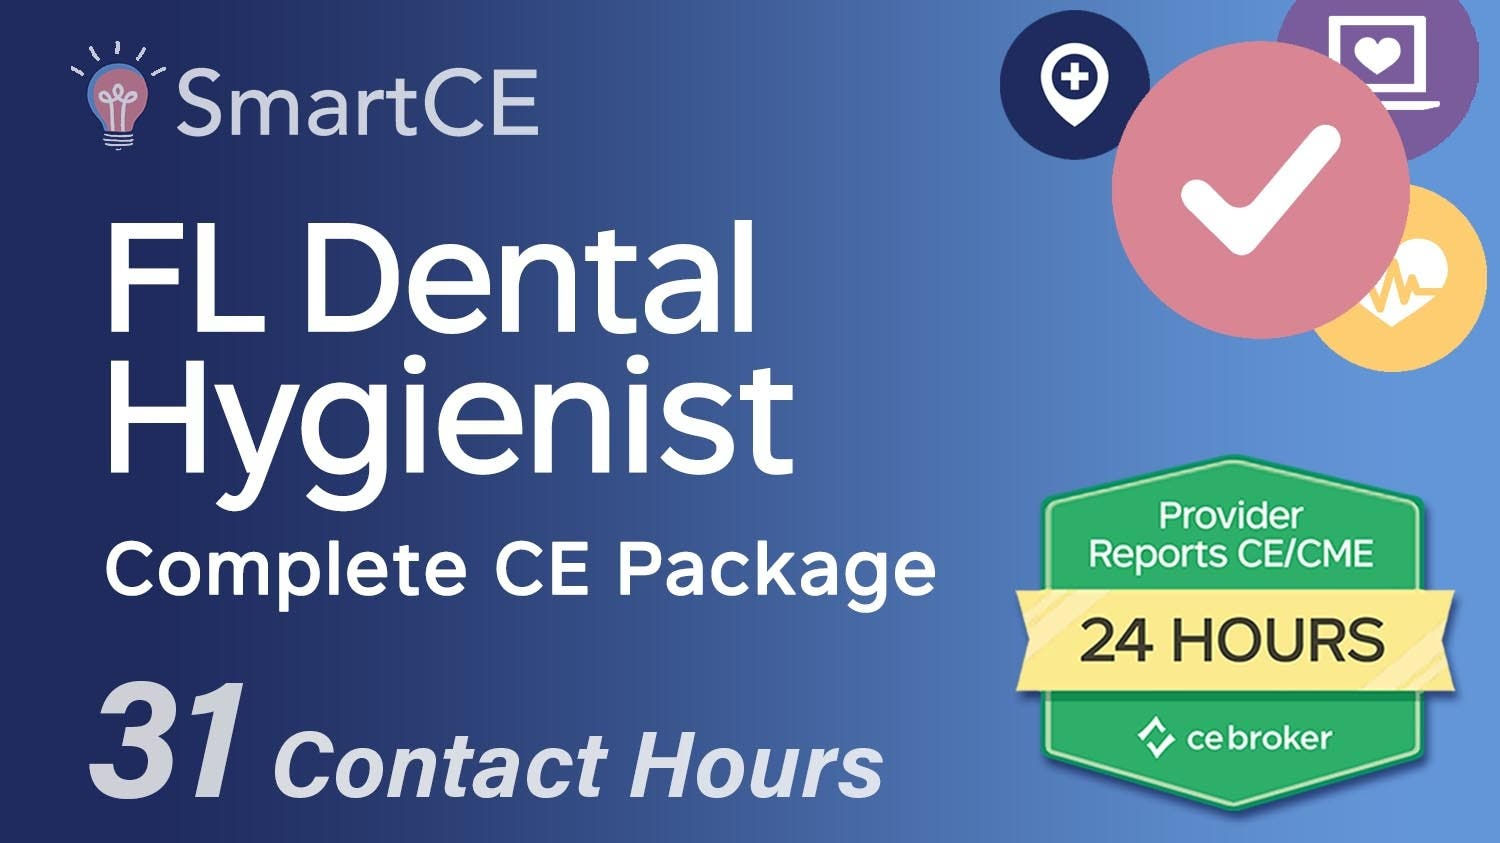 Florida Dental Hygienist Complete CE Package - 31 Contact Hours /20-685813